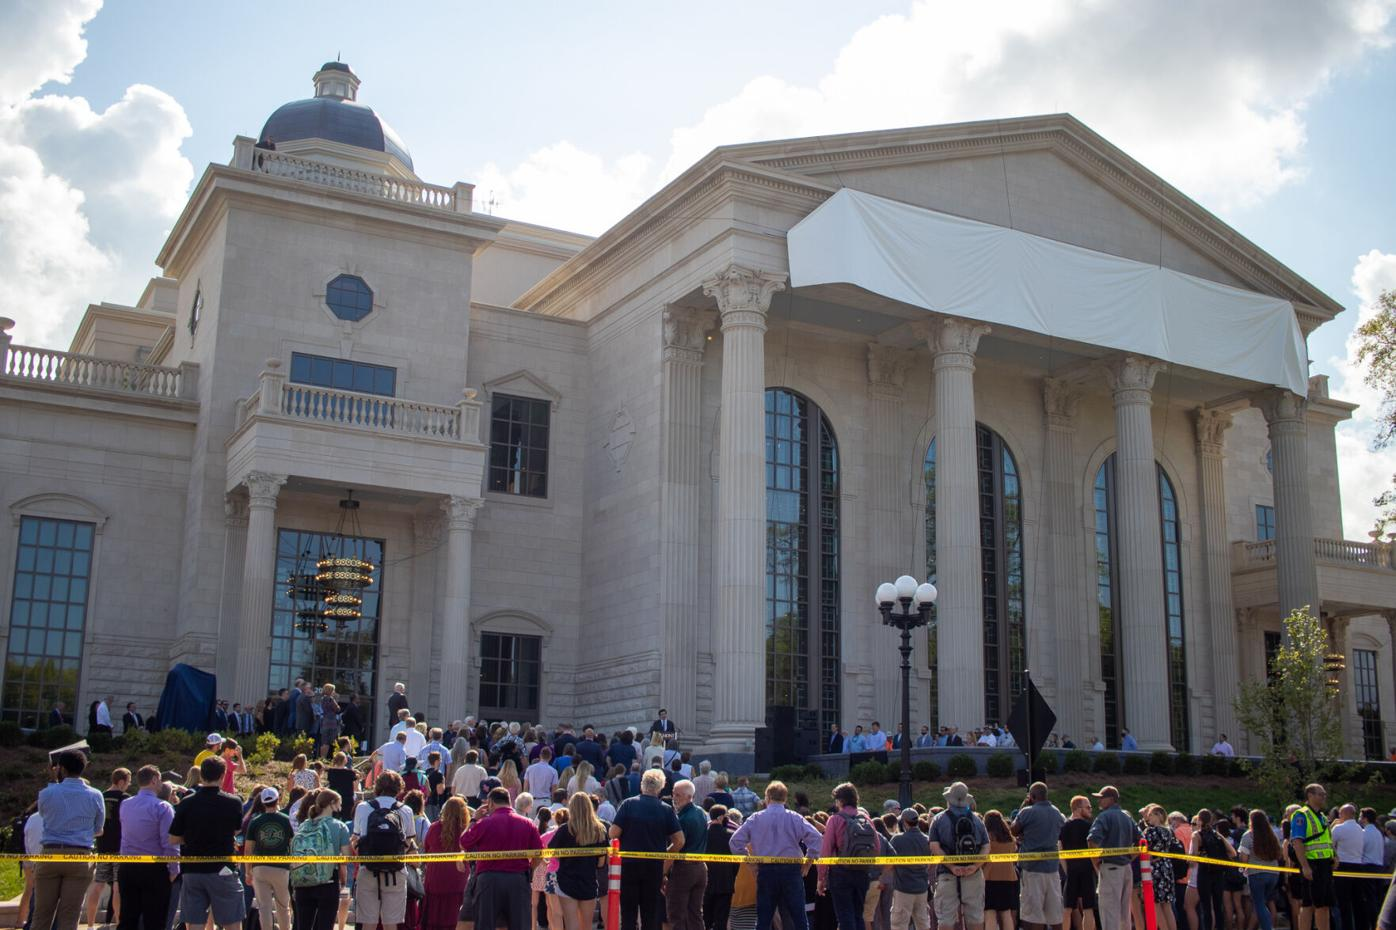 Hundreds gather for Belmont reveal of new performing arts center